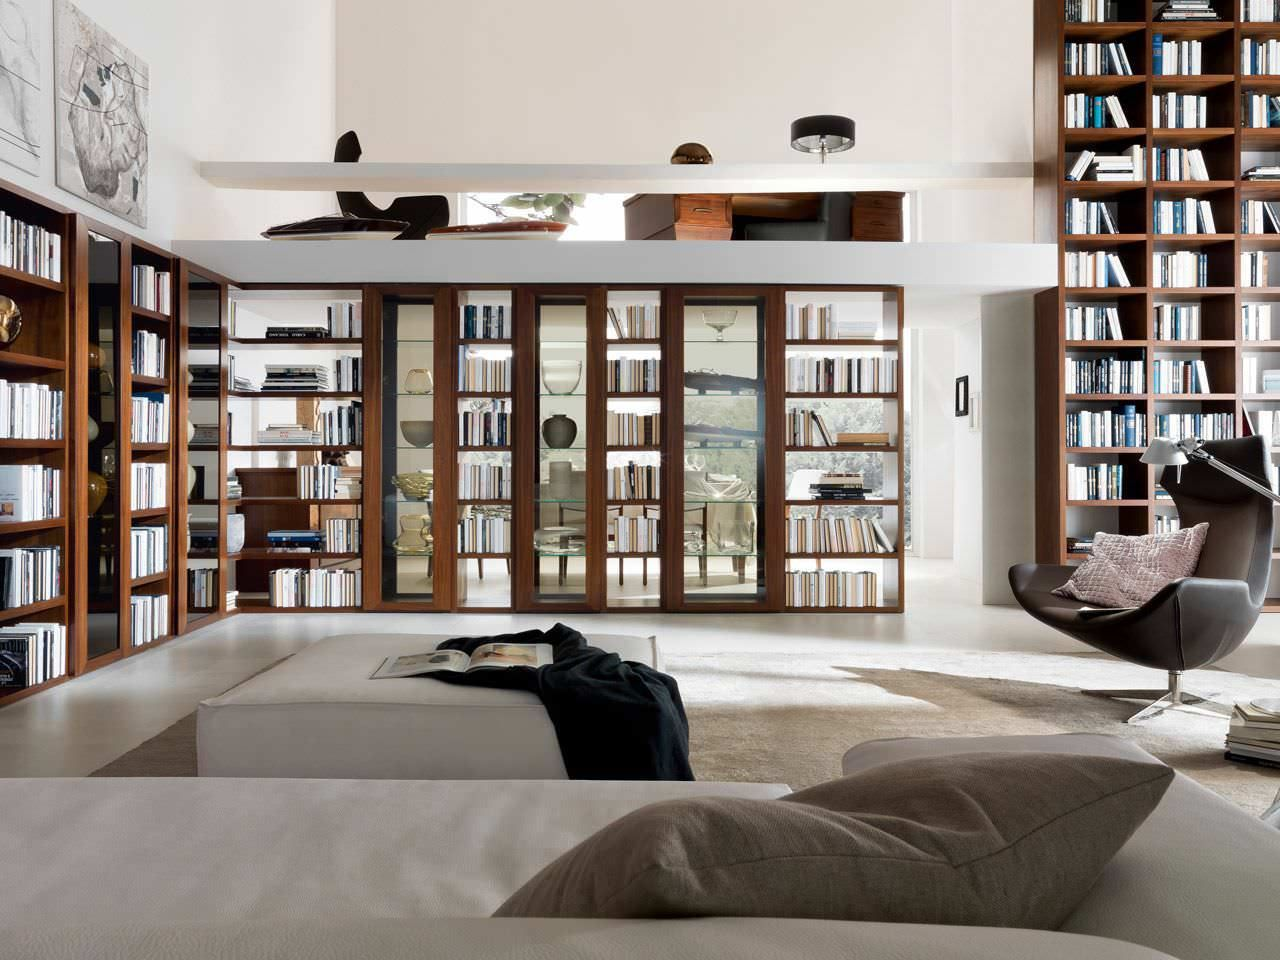 home library furniture. Home Library Furniture: Amazing White Design With Modern Wooden Bookcase Furniture Ideas In